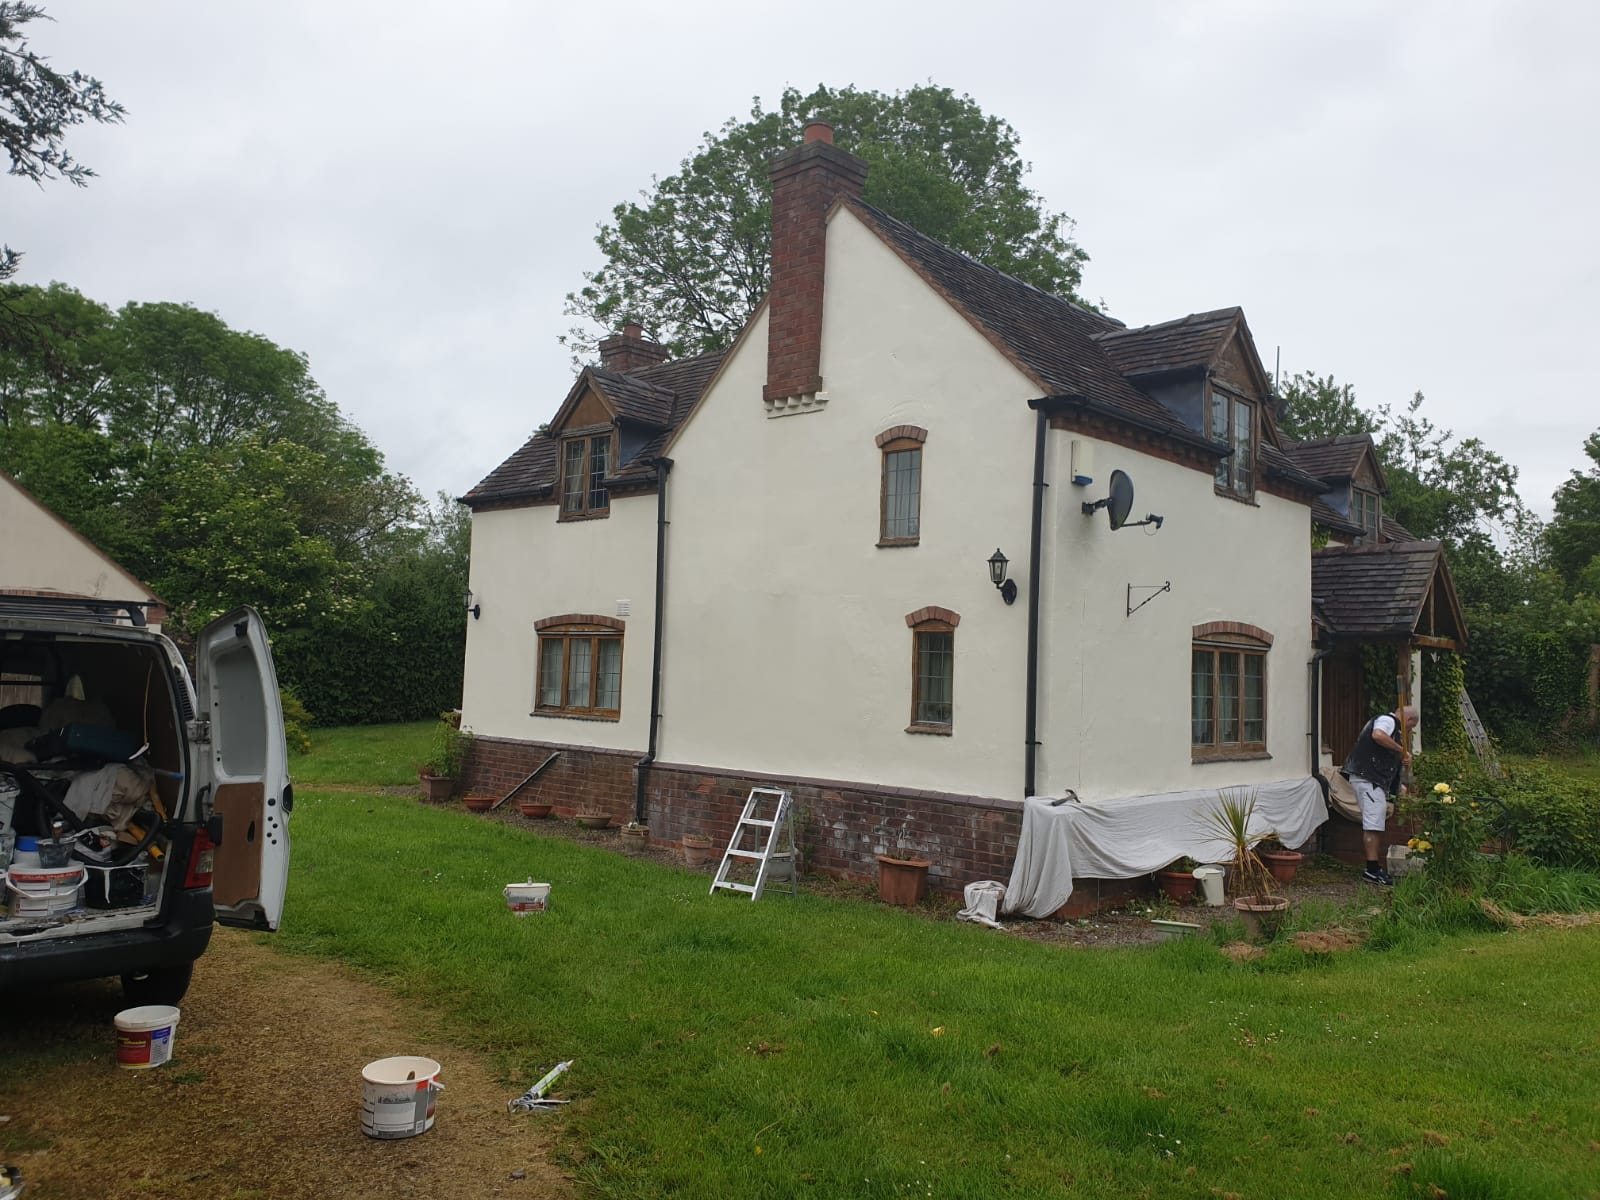 xterior Walls Painted on this Cottage